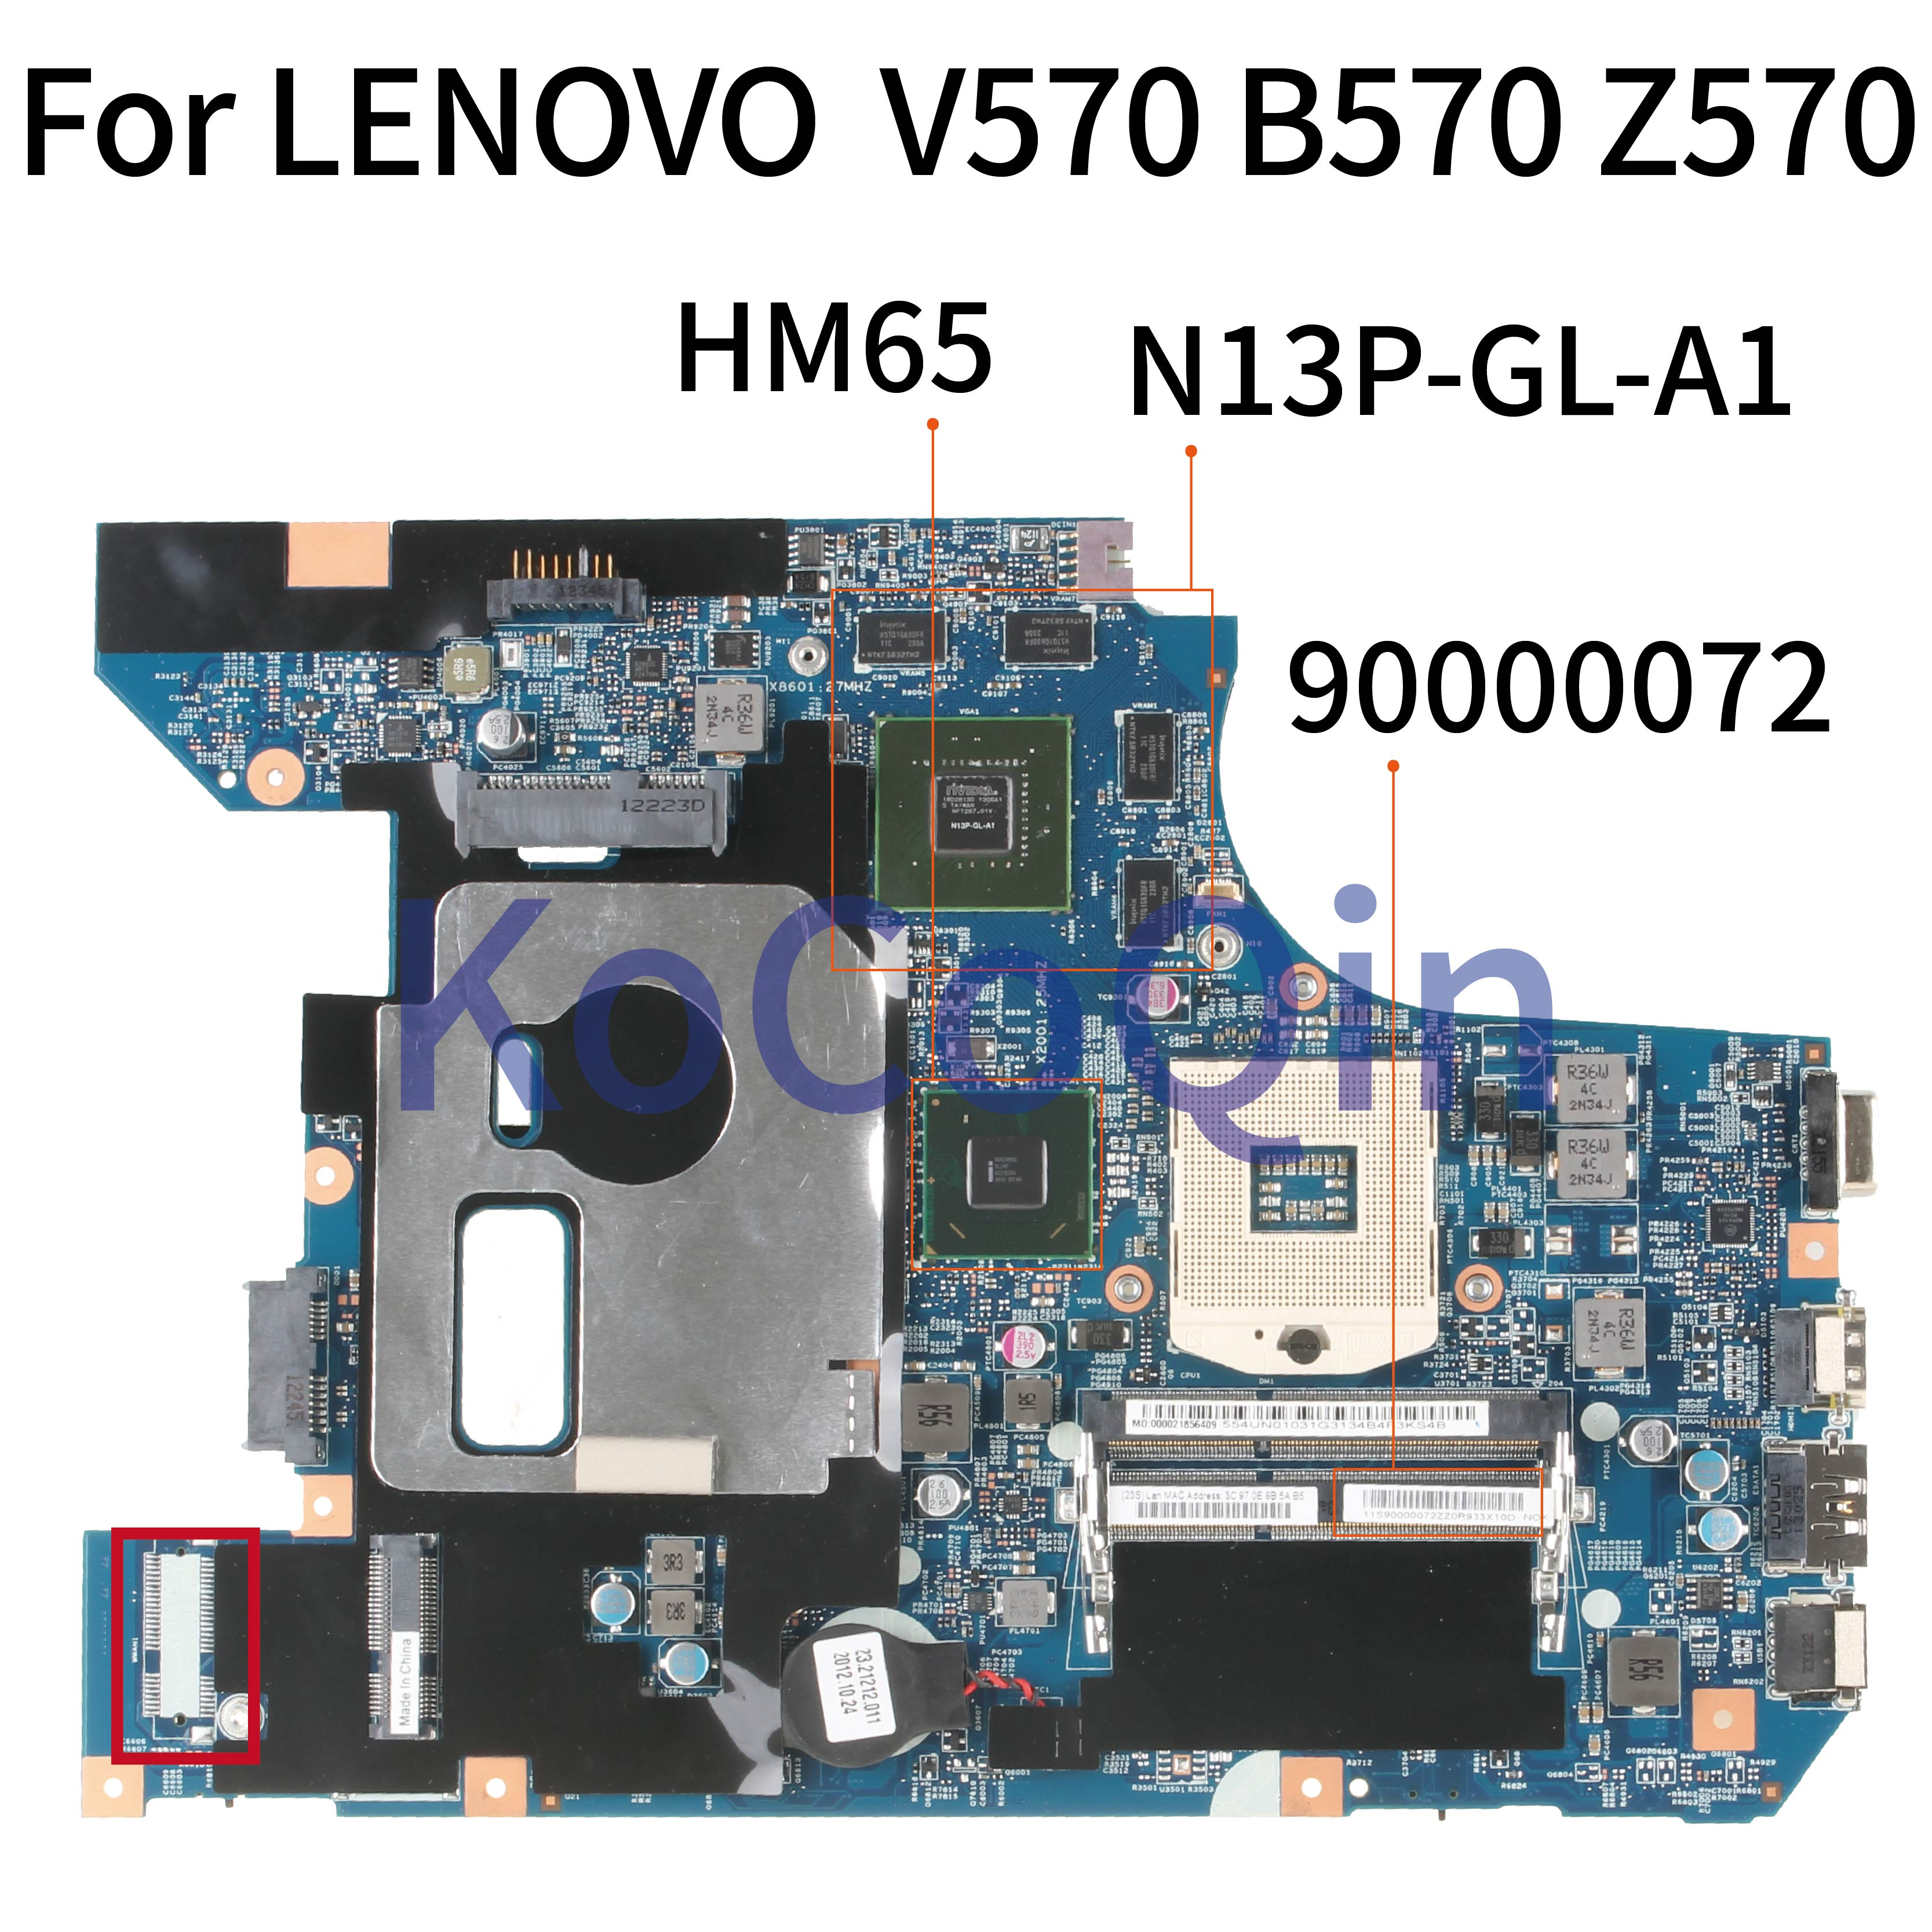 KoCoQin Laptop <font><b>motherboard</b></font> For <font><b>LENOVO</b></font> <font><b>V570</b></font> B570 Z570 HM65 N13P-GL-A1 Mainboard 90000072 10290-4 image